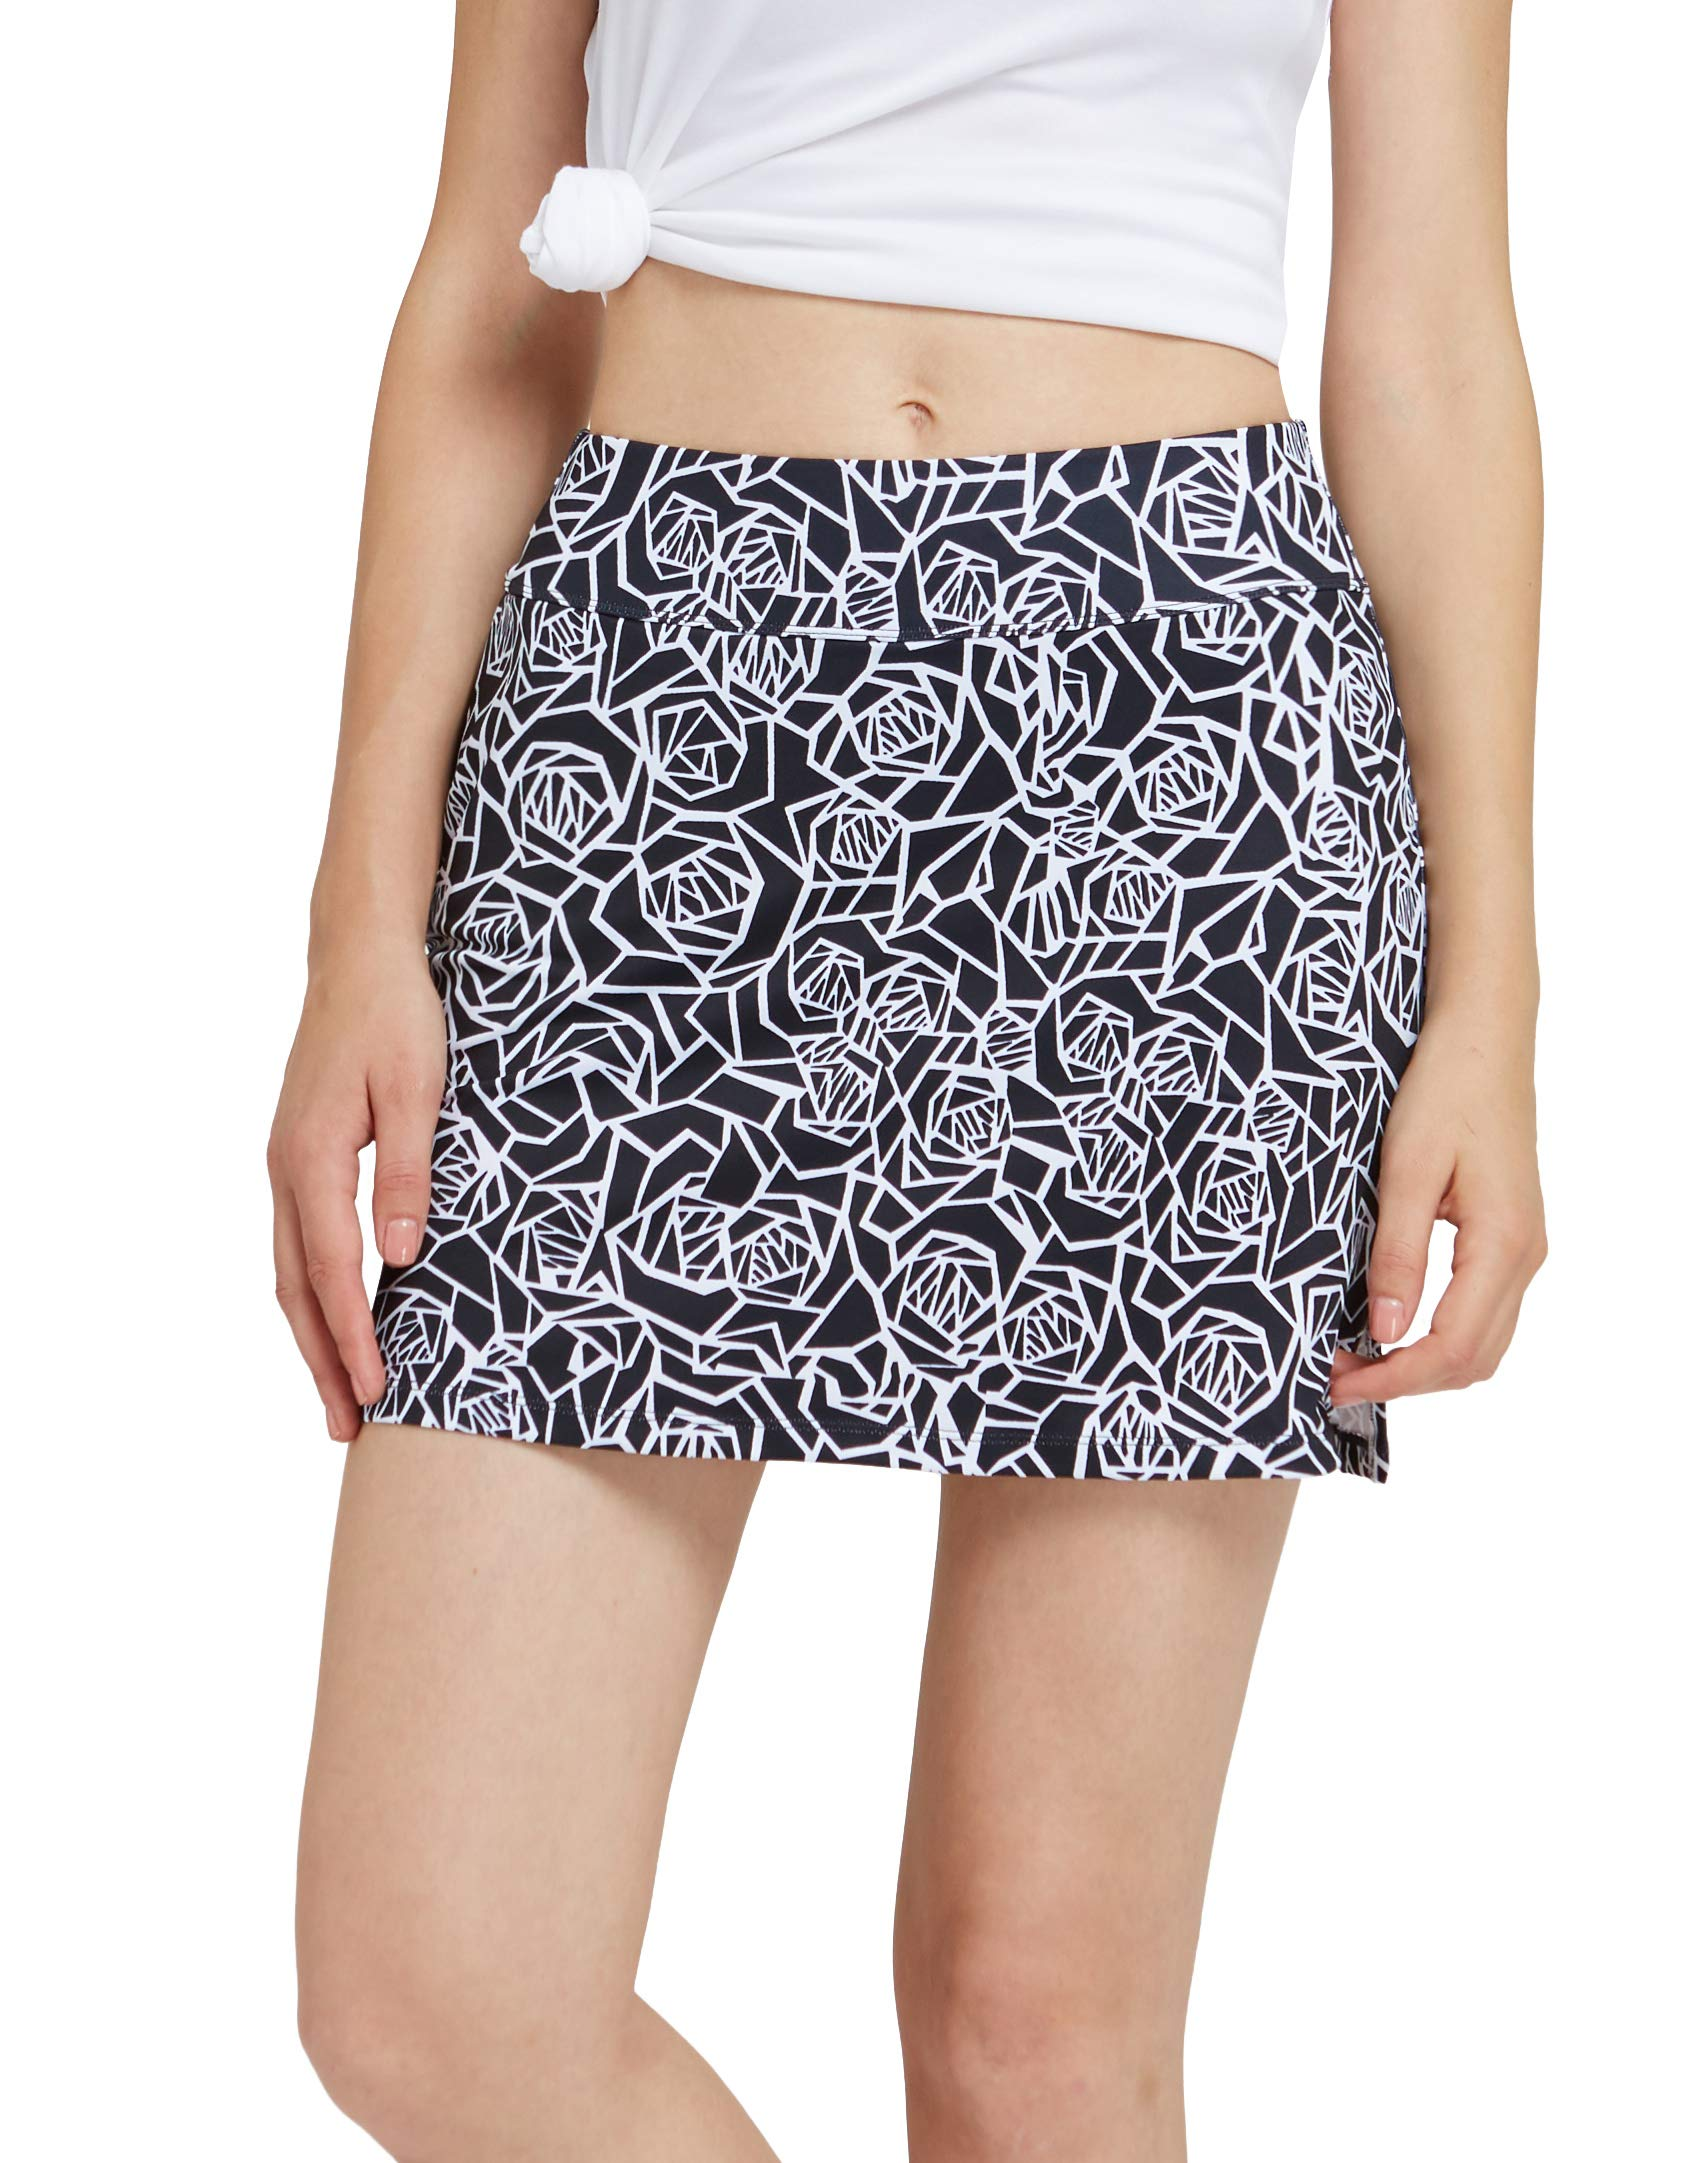 Womens Skort Built in Skirts for Golf Tennis Workout Casual Athleta Wear with Pockets Black Rose by HonourSex